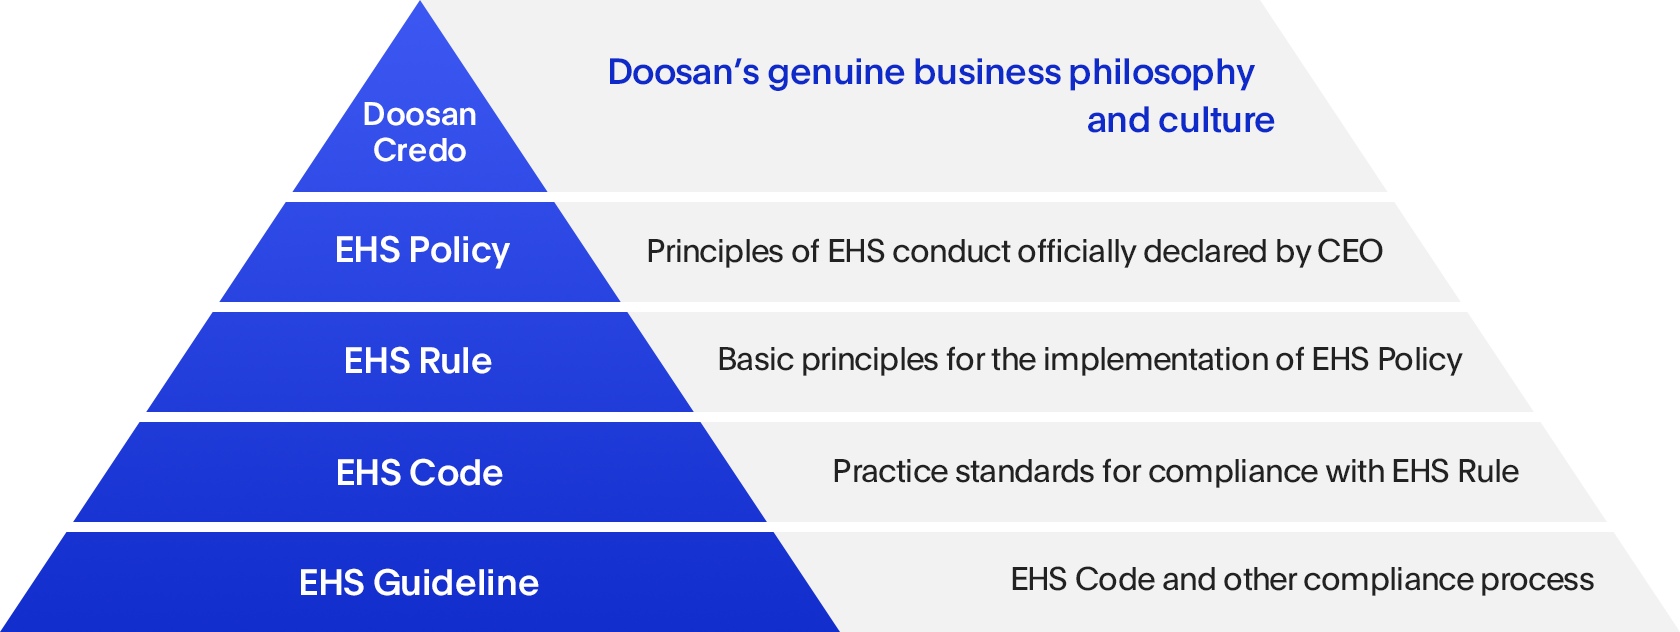 Doosan's EHS Standard System Image  - (From above)Doosan's genuine business philosophy and culture, Principles of EHS conduct officially declared by CEO, Basic principles for the implementation of EHS Policy, Practice standards for compliance with EHS Rule, EHS Code and other compliance process